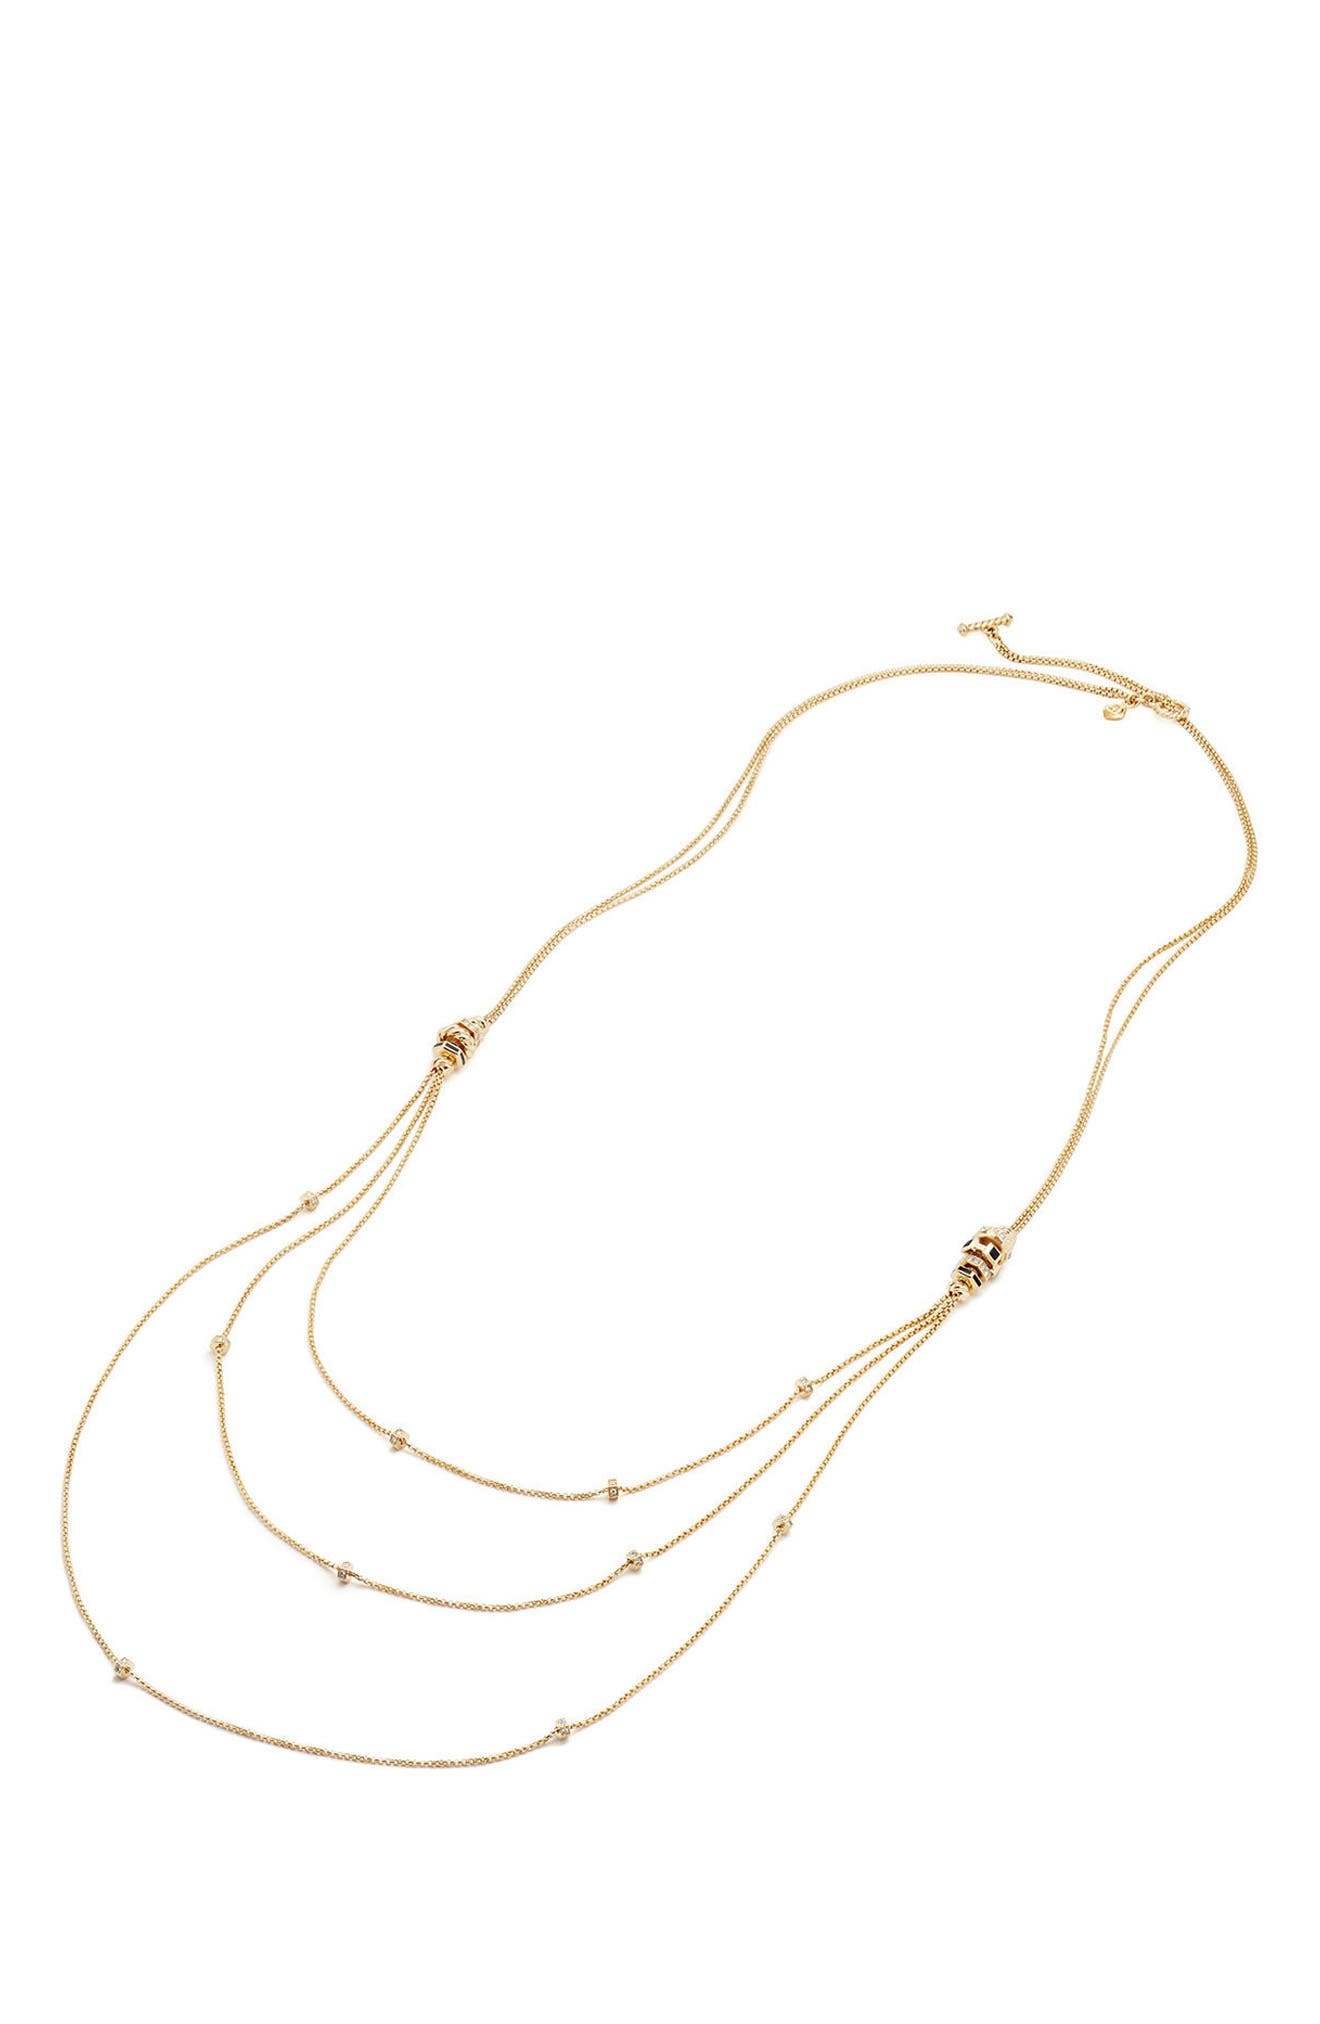 Stax 18K Gold Chain Necklace with Diamonds,                             Alternate thumbnail 2, color,                             BLACK SPINEL